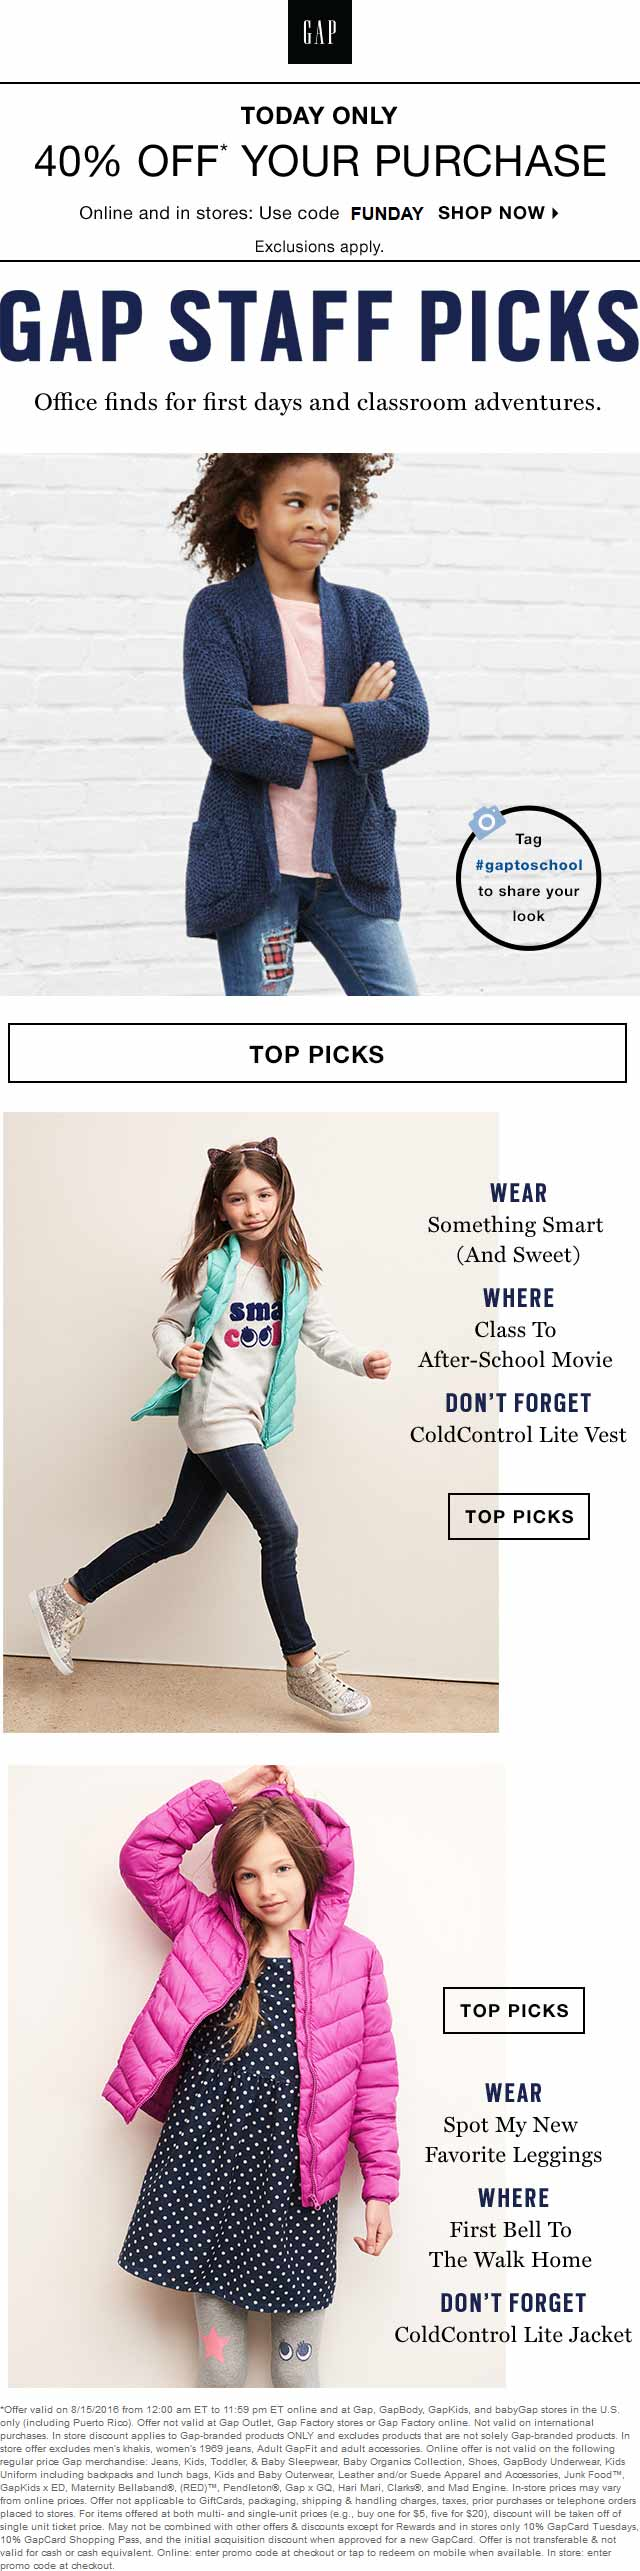 Gap Coupon August 2017 40% off today at Gap, or online via promo code FUNDAY